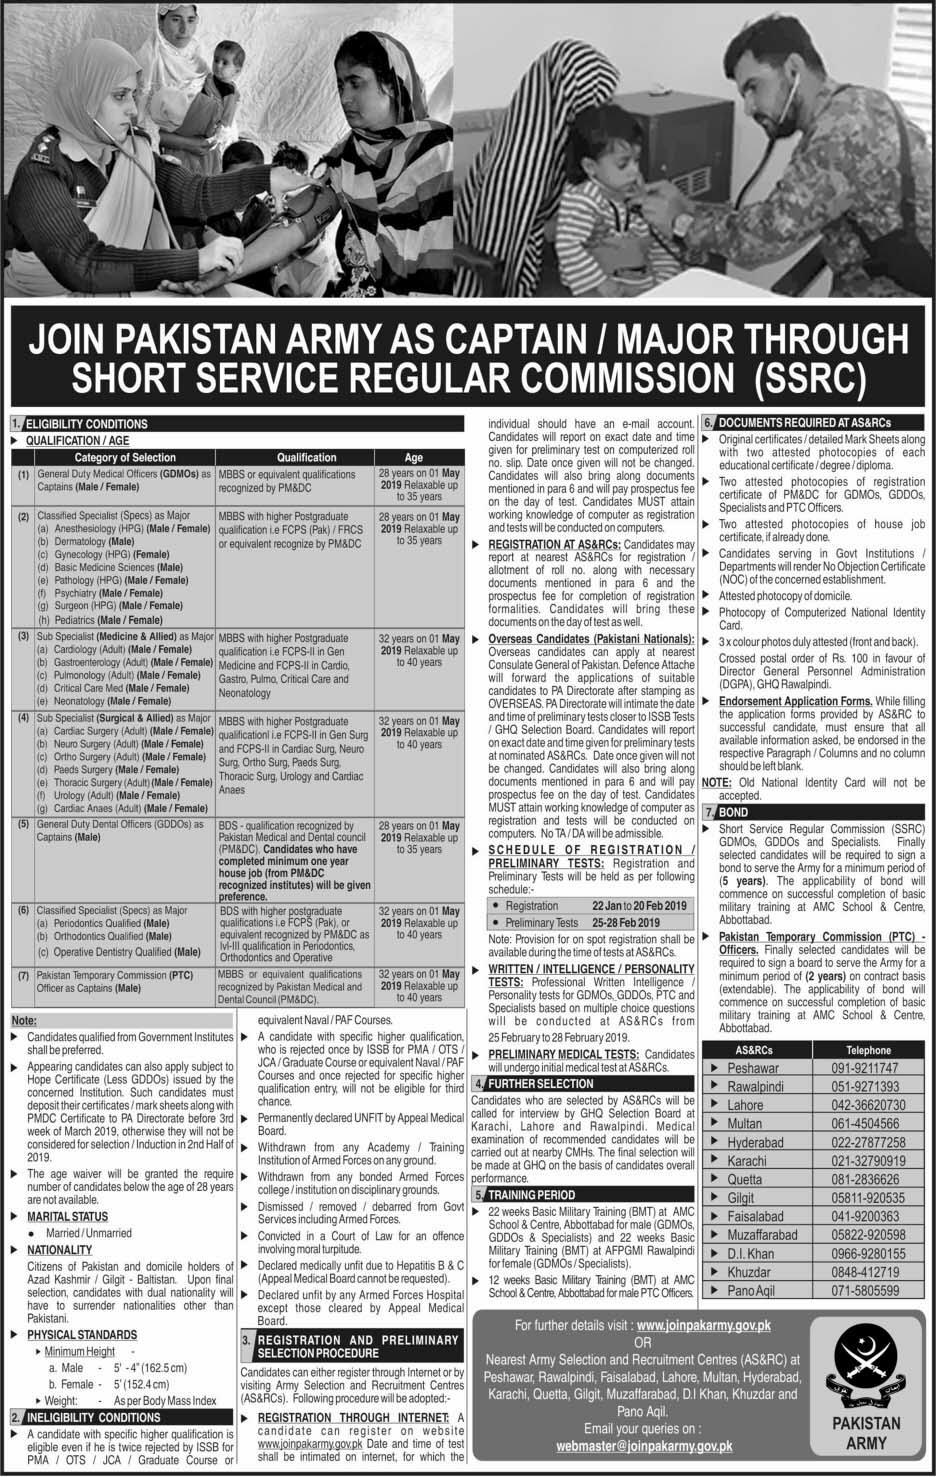 Join Pakistan Army As Captain, Major Through Short Service Regular Commission